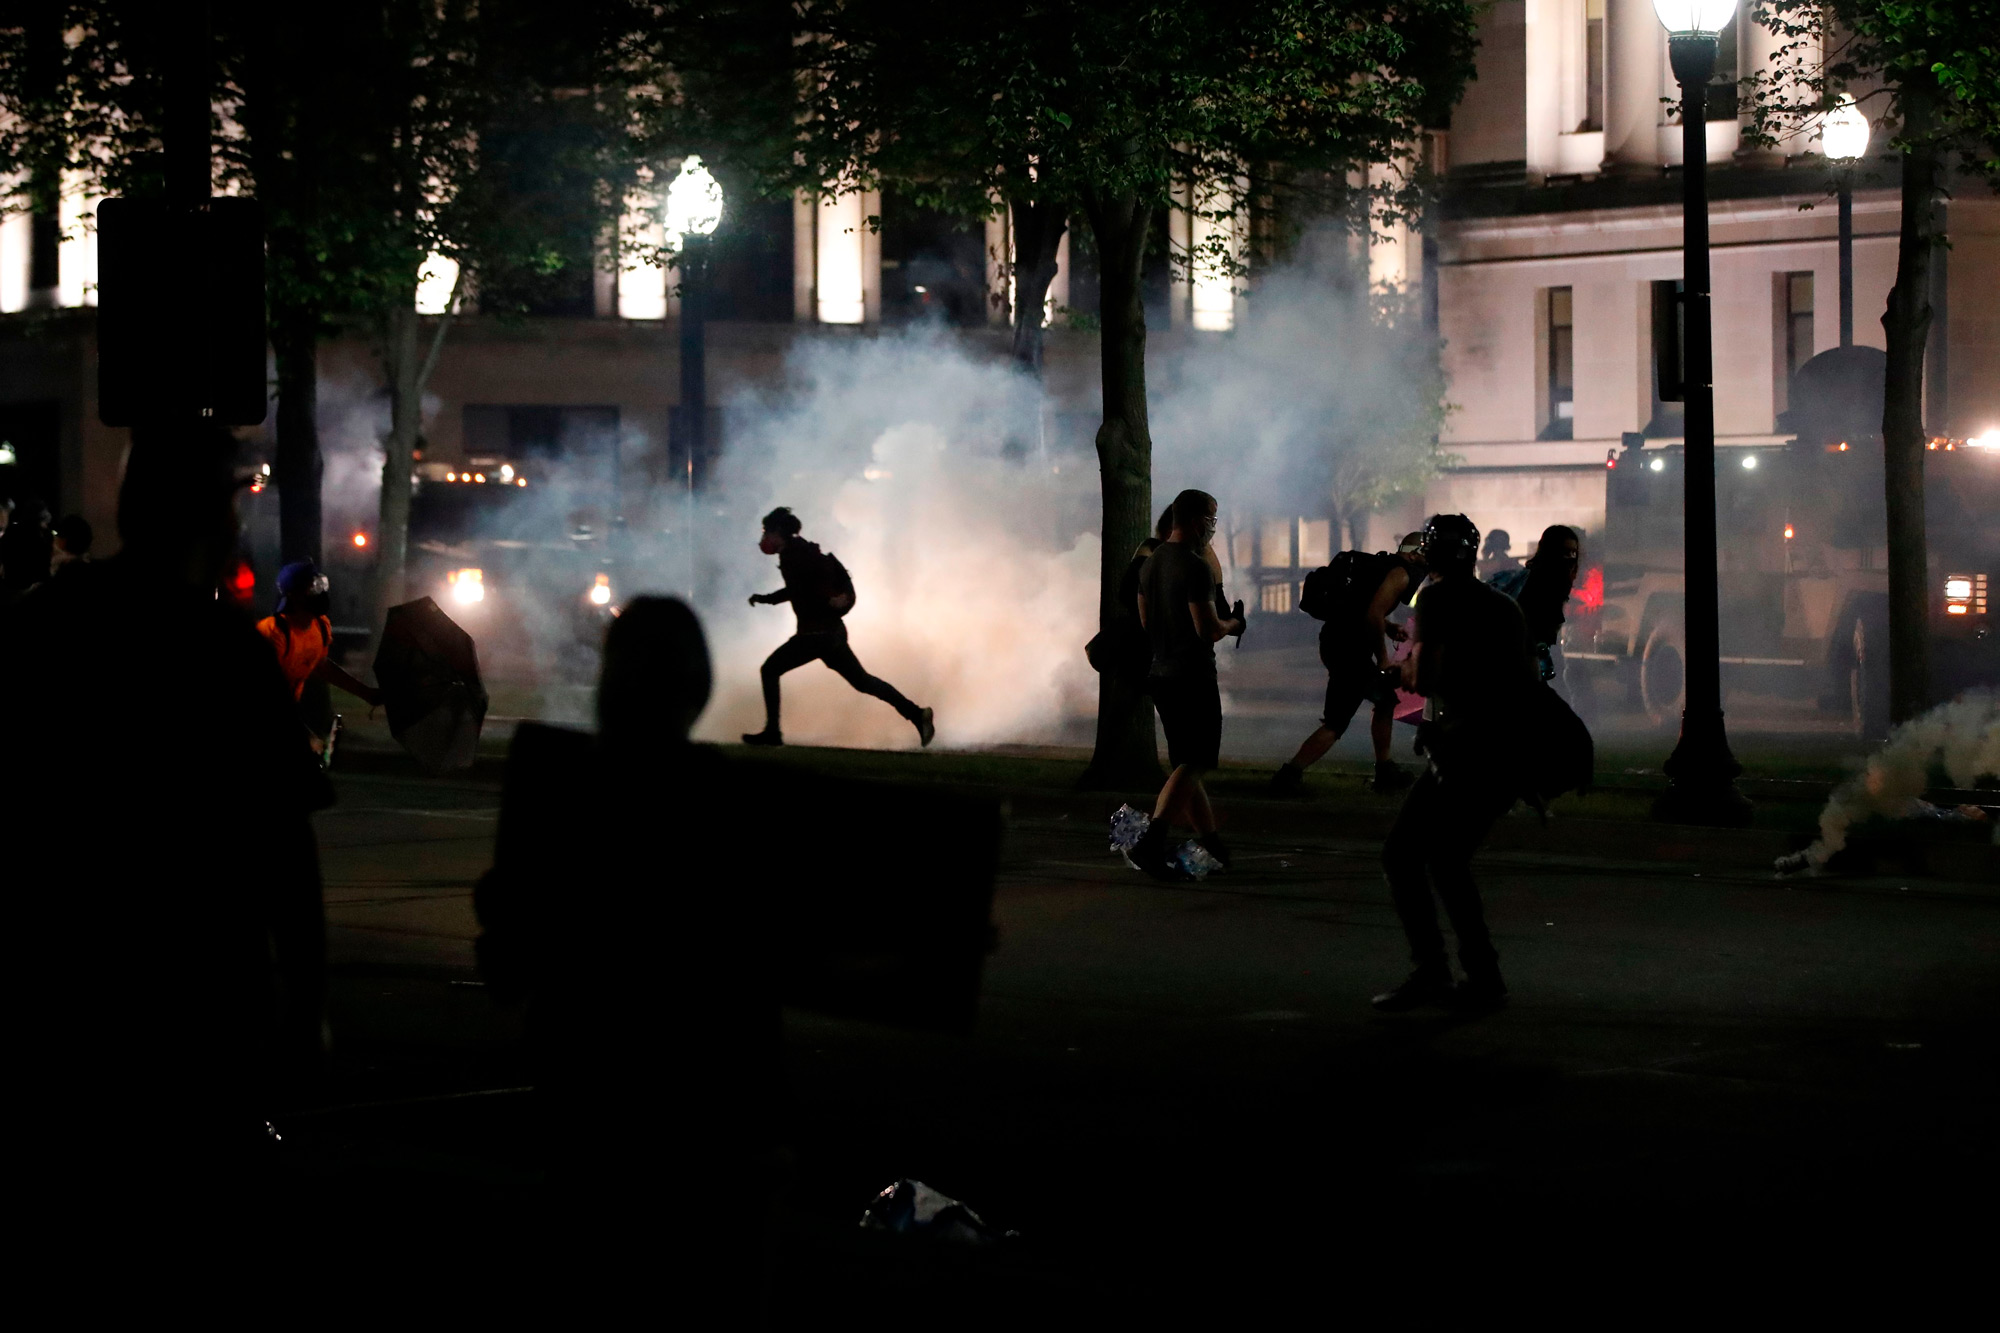 Protesters clash with Kenosha County Sherriff's officers in front of the County Court House during demonstrations against the shooting of Jacob Blake in Kenosha, Wisconsin on August 24.